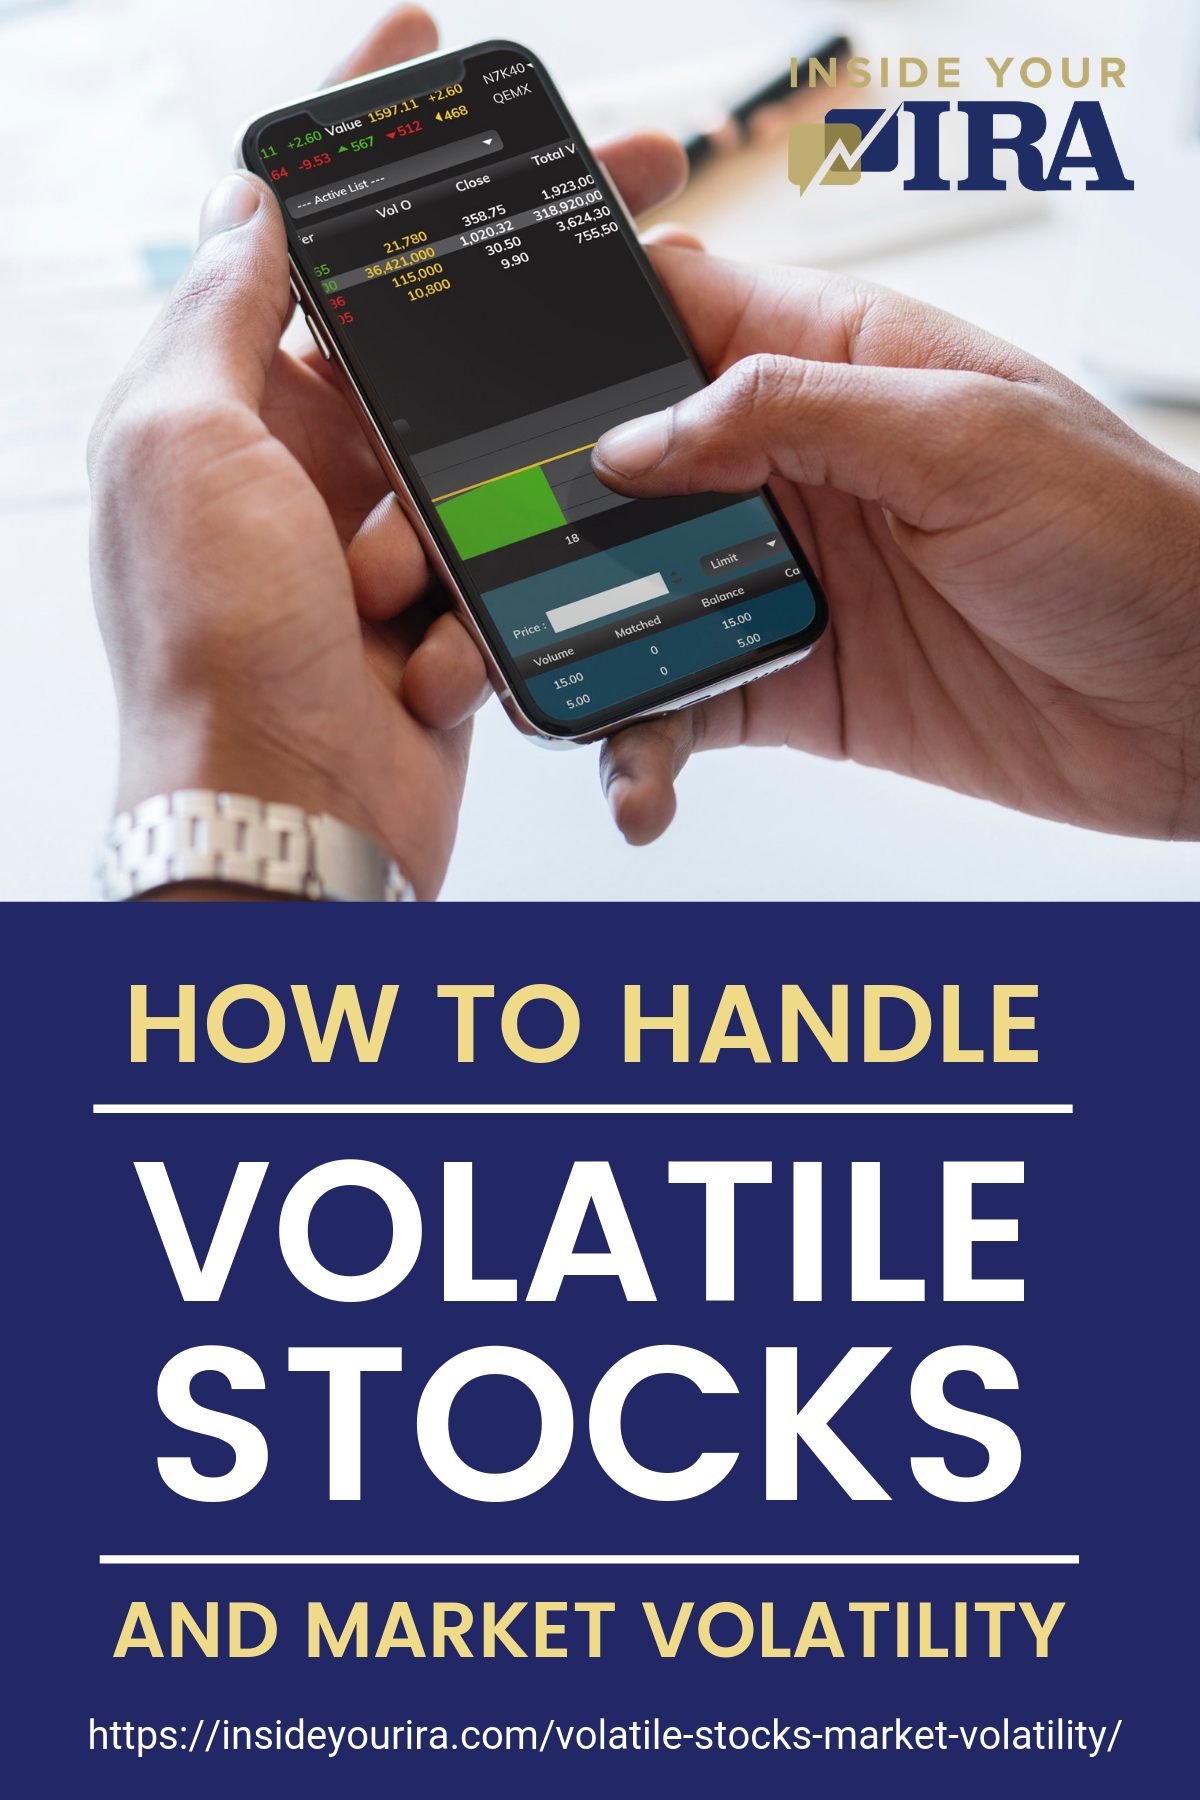 How To Handle Volatile Stocks And Market Volatility | Inside Your IRA https://insideyourira.com/volatile-stocks-market-volatility/